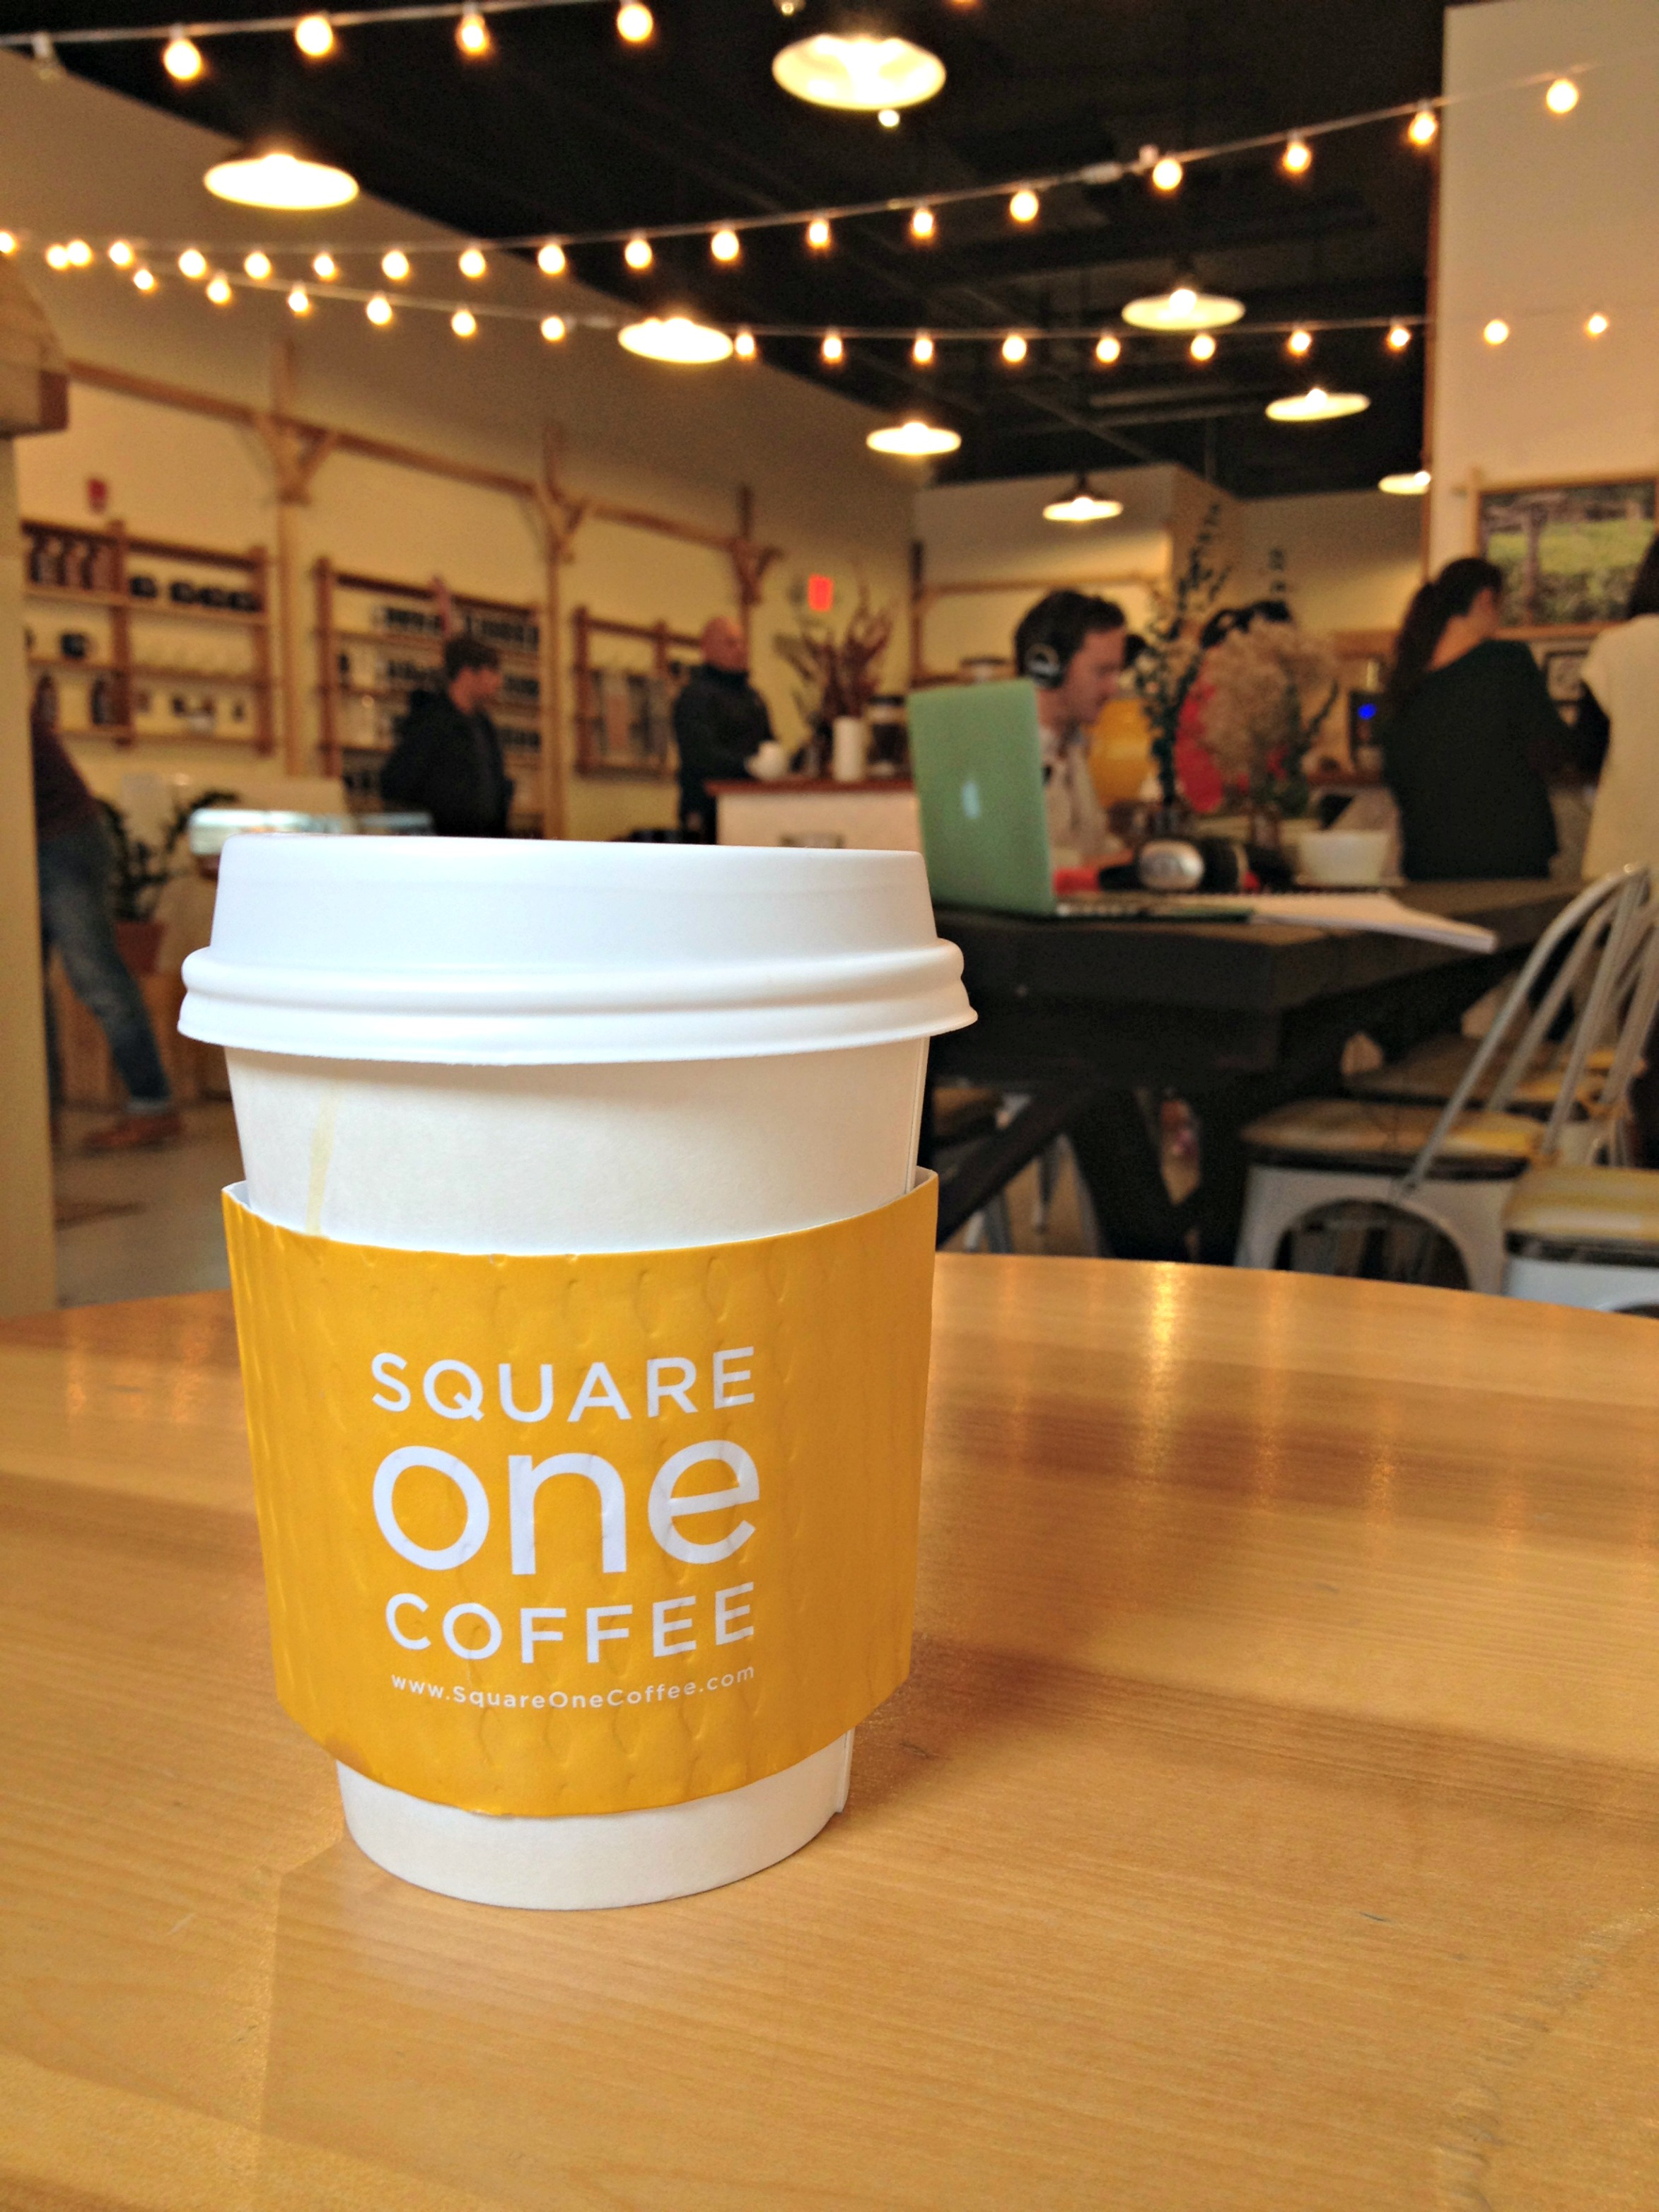 But First: Square One Coffee